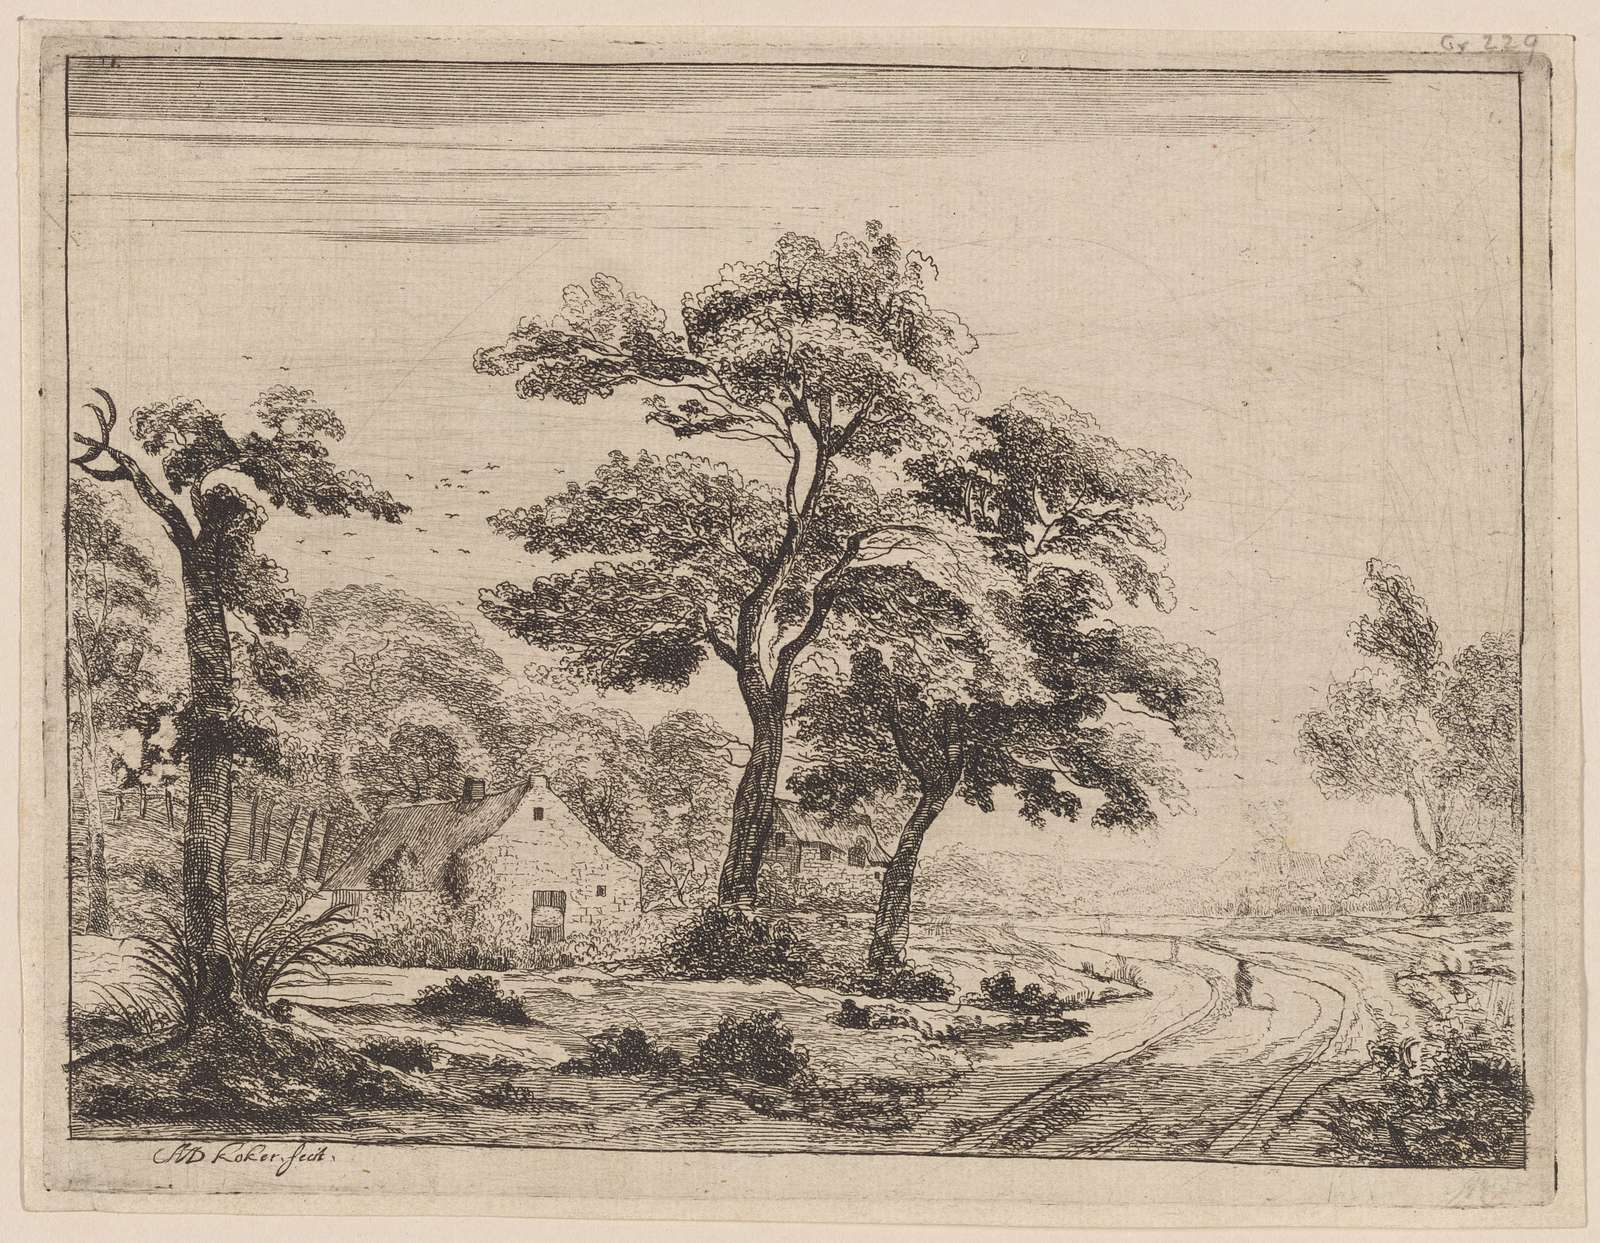 Landscape : a road, on which a figure is walk ing, passes two cottages under trees on the left